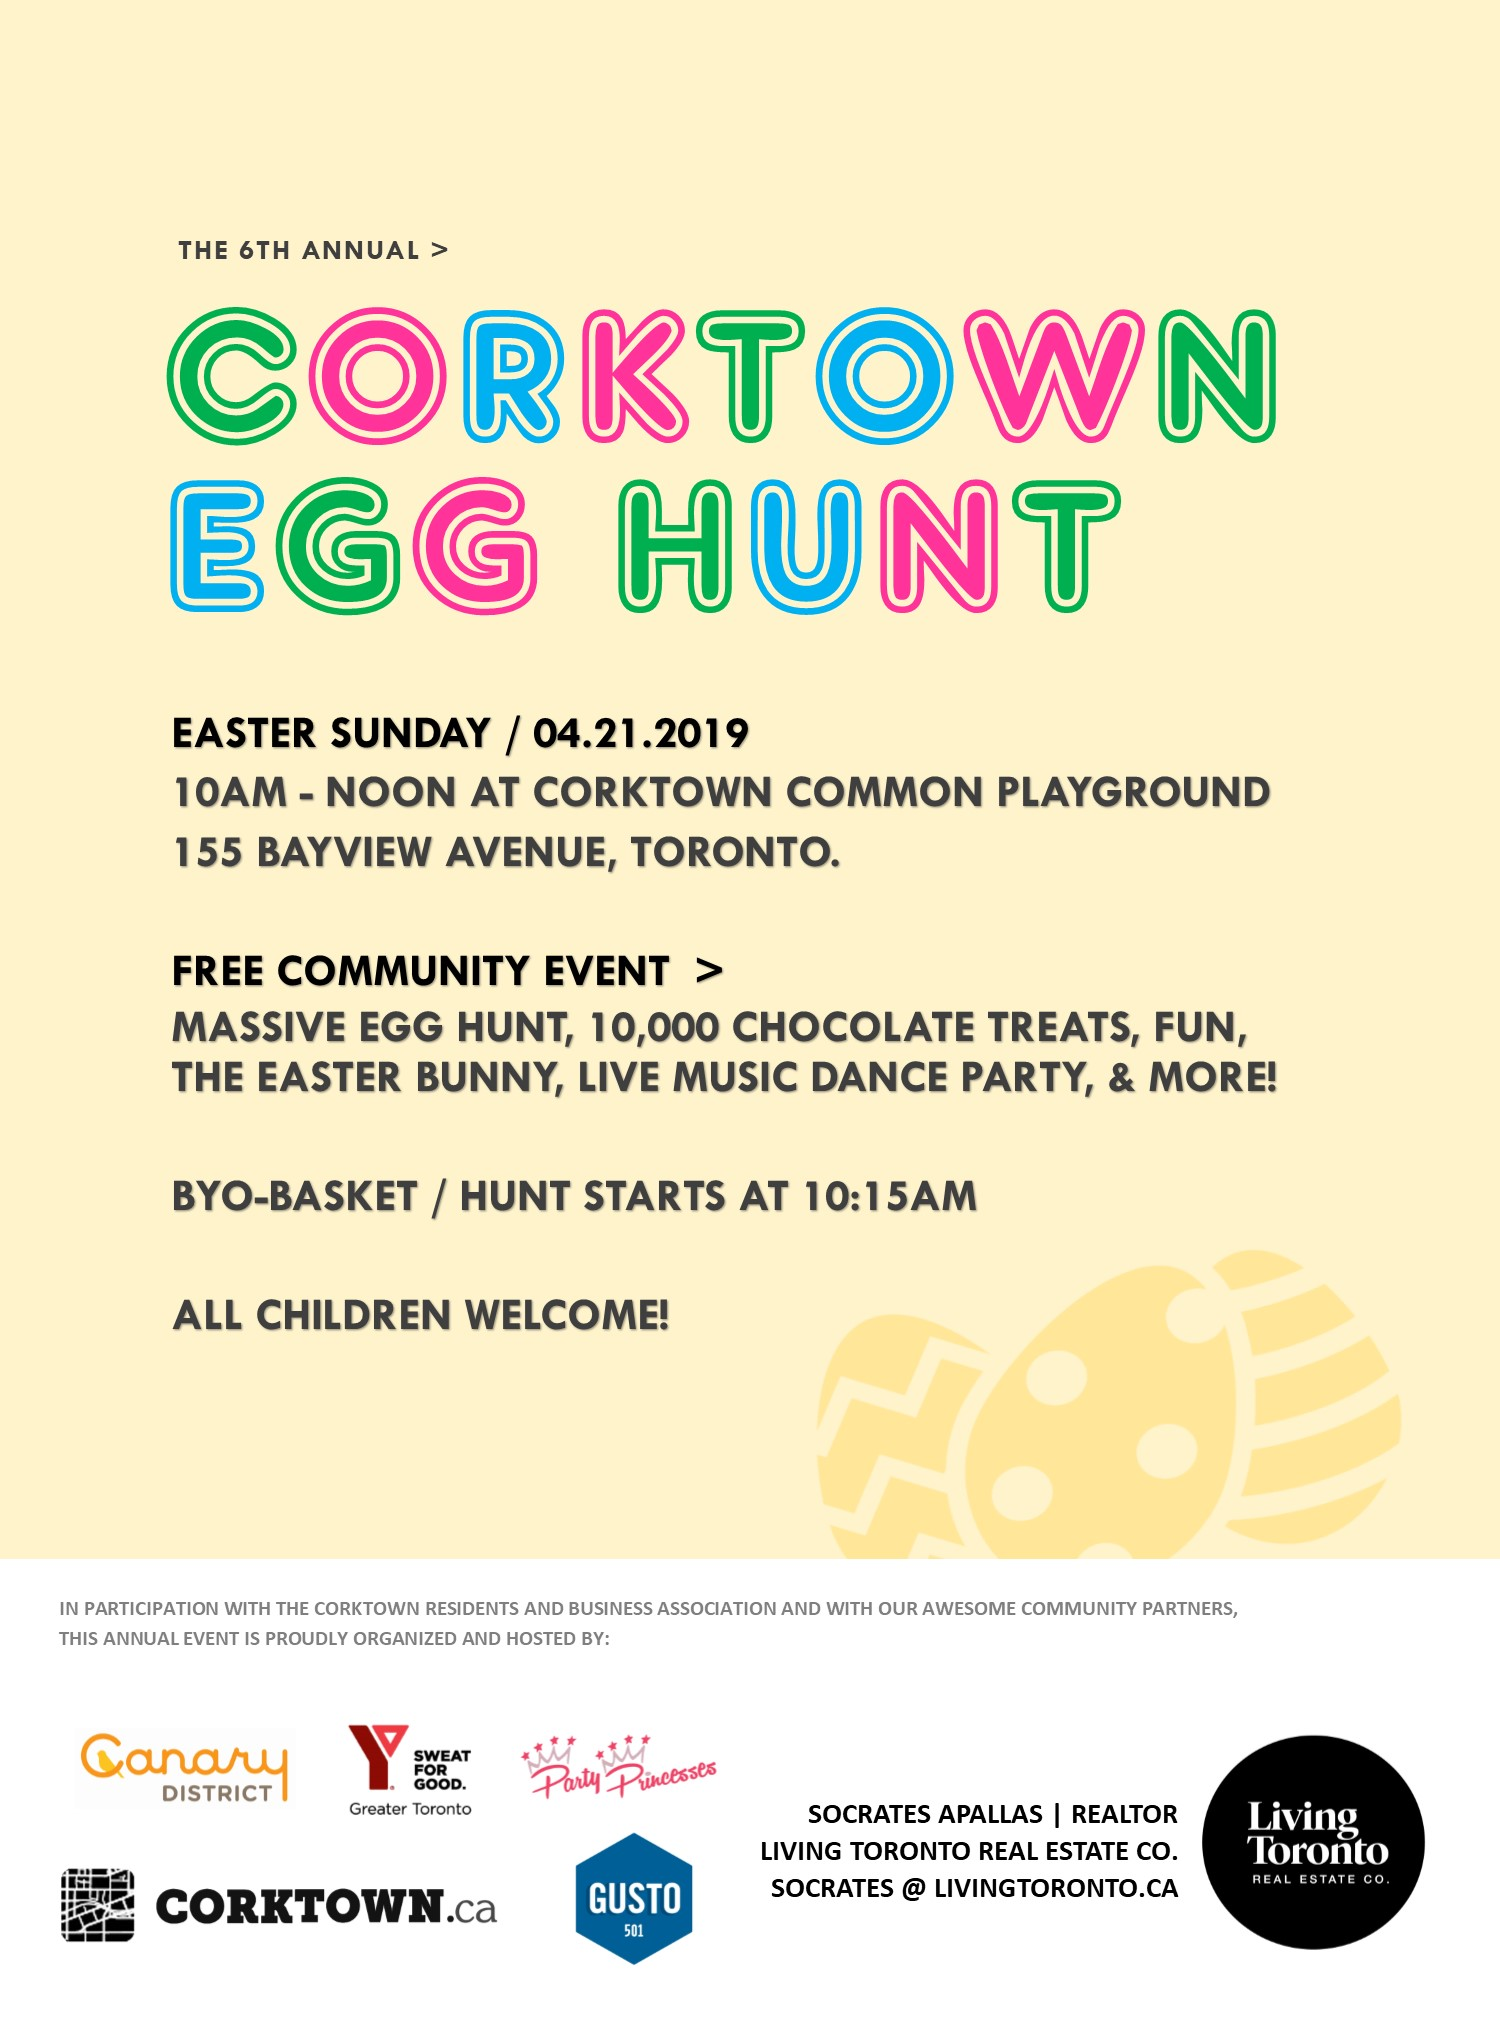 Calling all Corktowners and Torontonians! Our 6th Annual Corktown Egg Hunt takes place April 21st, 2019. Join us at Corktown Common from 10am-12pm.